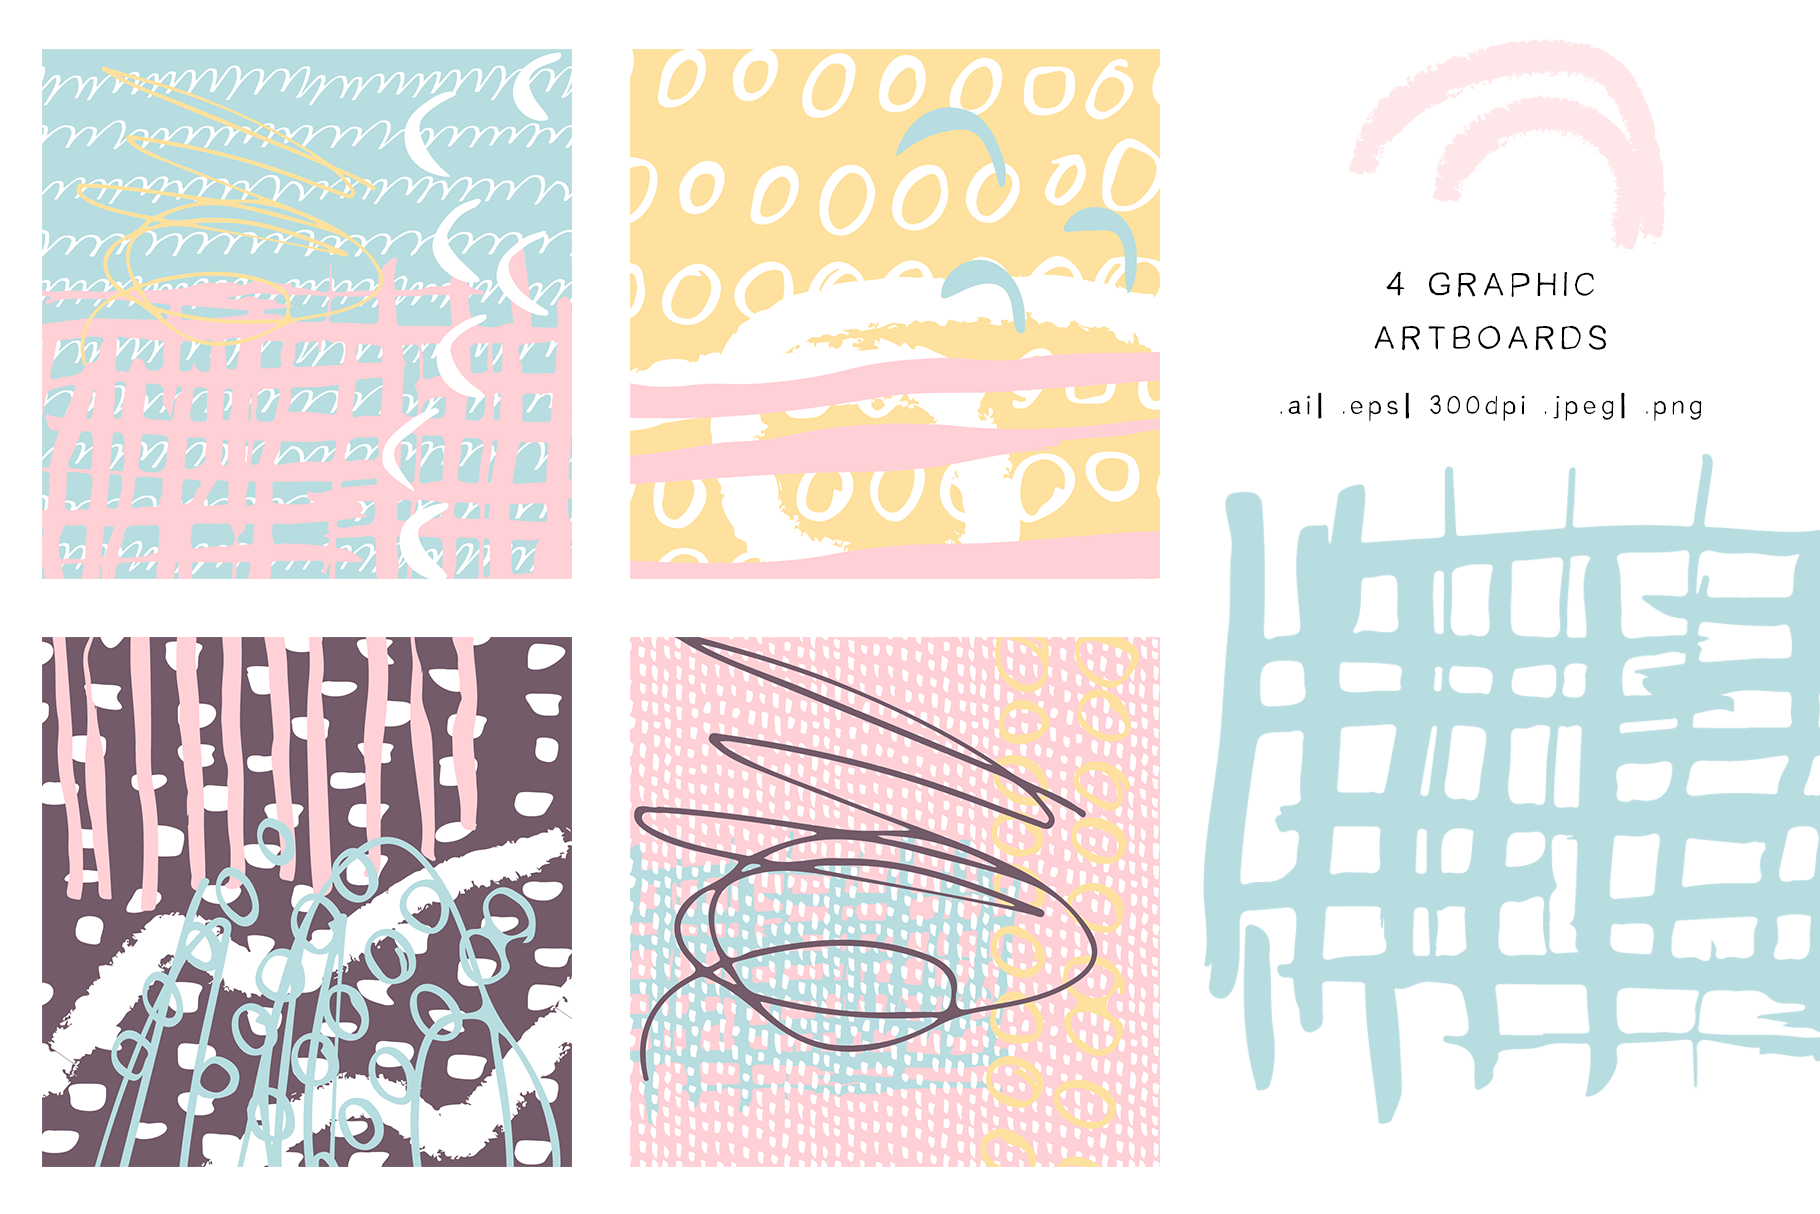 Abstract design elements. Collages & seamless patterns example image 2